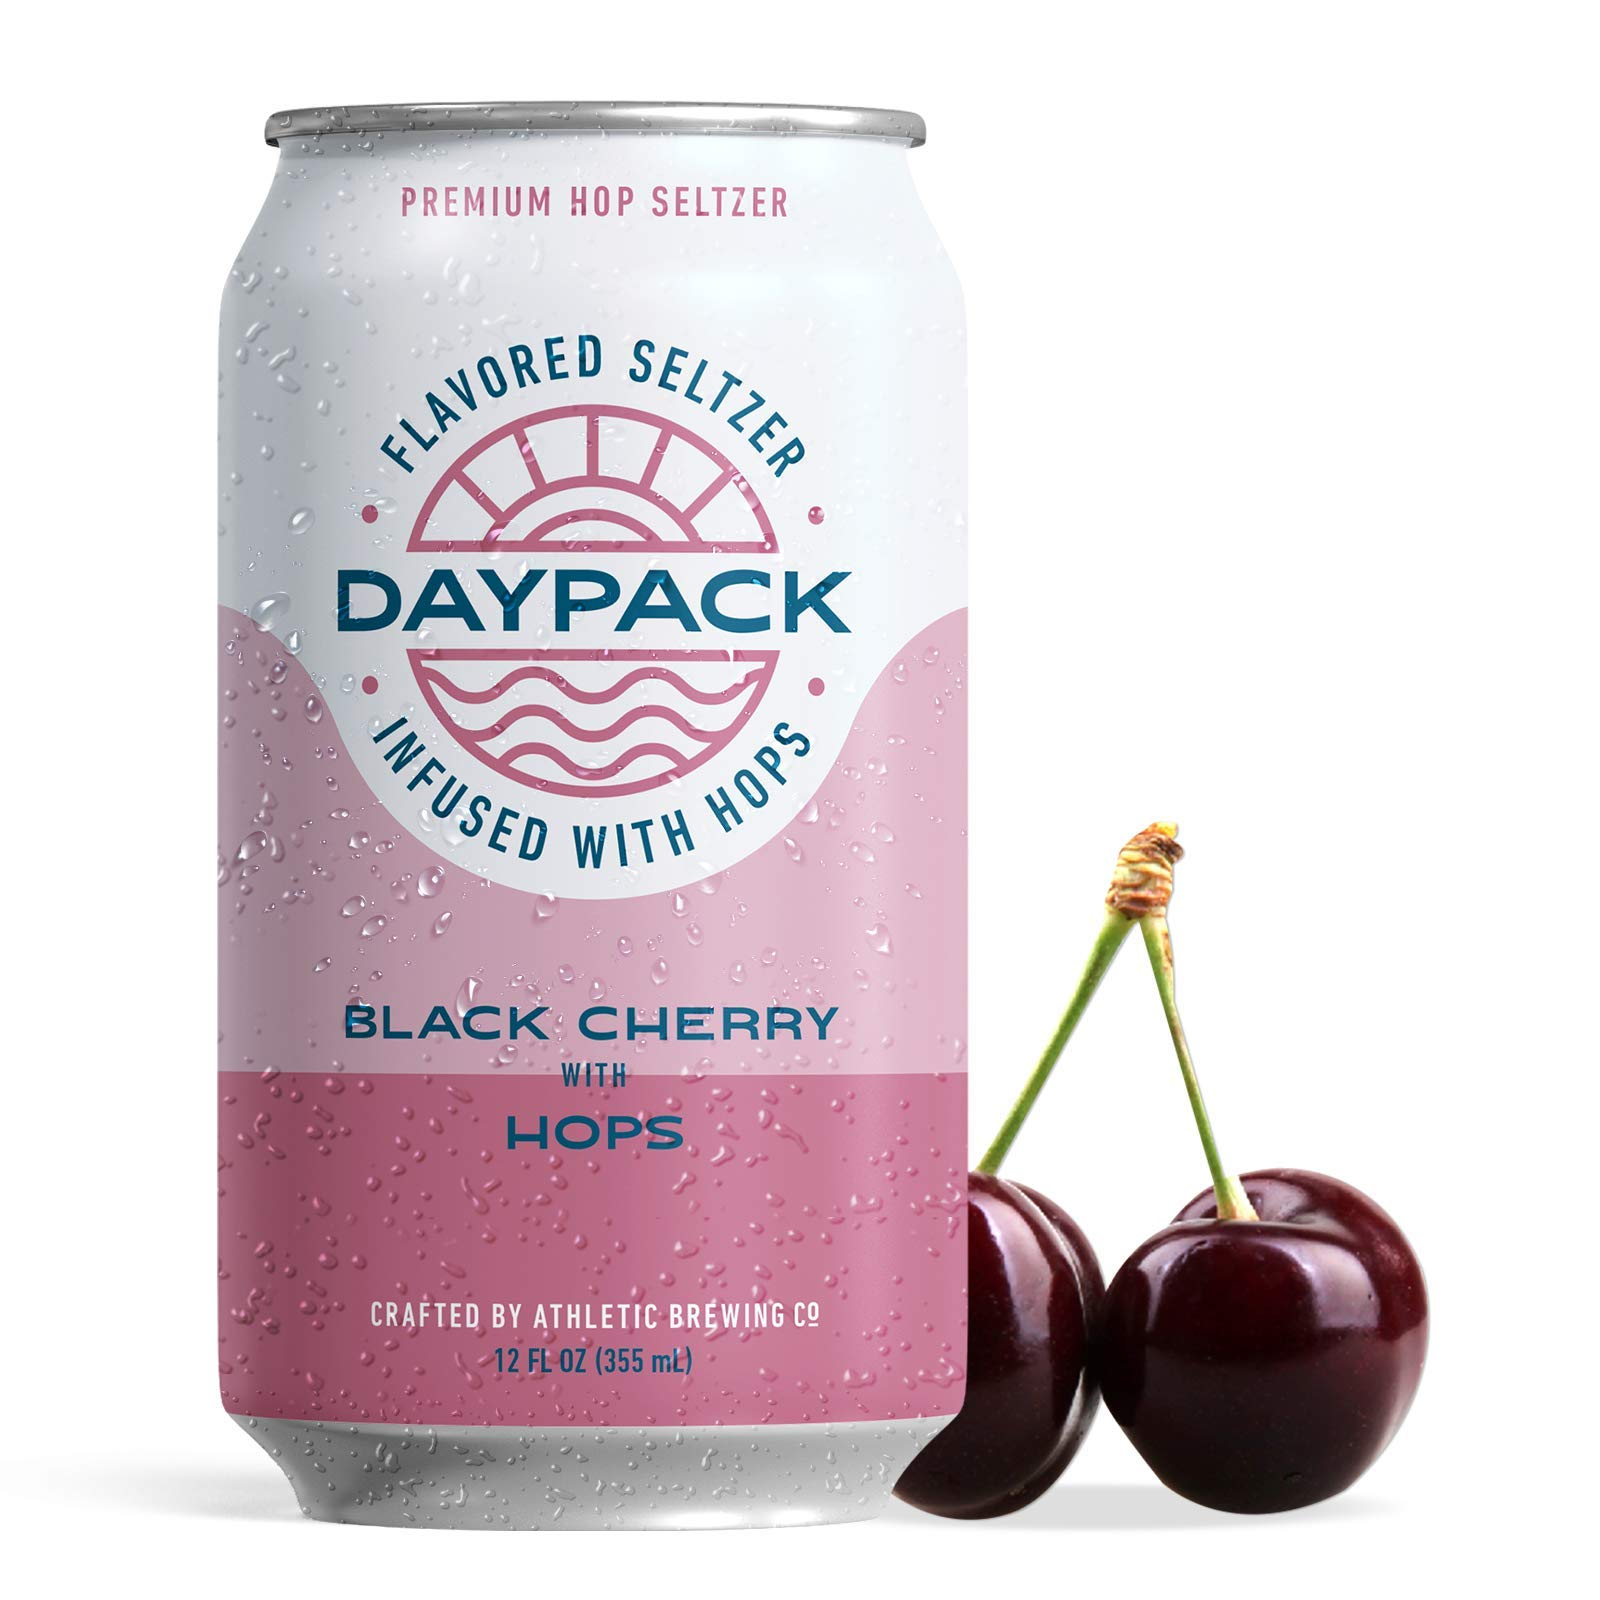 Athletic Brewing CompanyDayPackSparkling Water - 12-Pack of Black Cherry Flavored Seltzer - Zero-Calorie, Zero-Carbs - Natural IngredientsForA Great Tasting Drink - 12 Fl Oz Cans